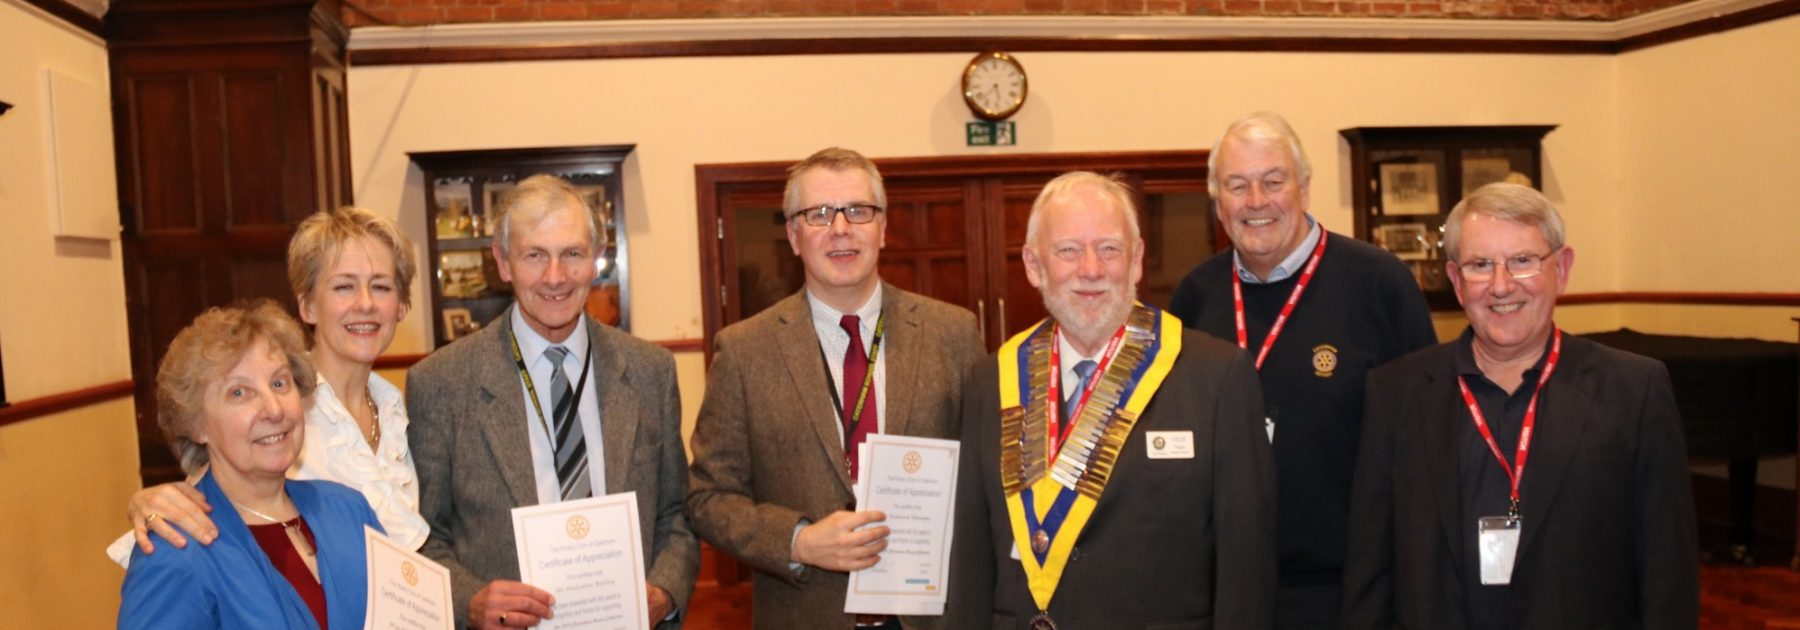 Caterham Rotary Thank You Reception